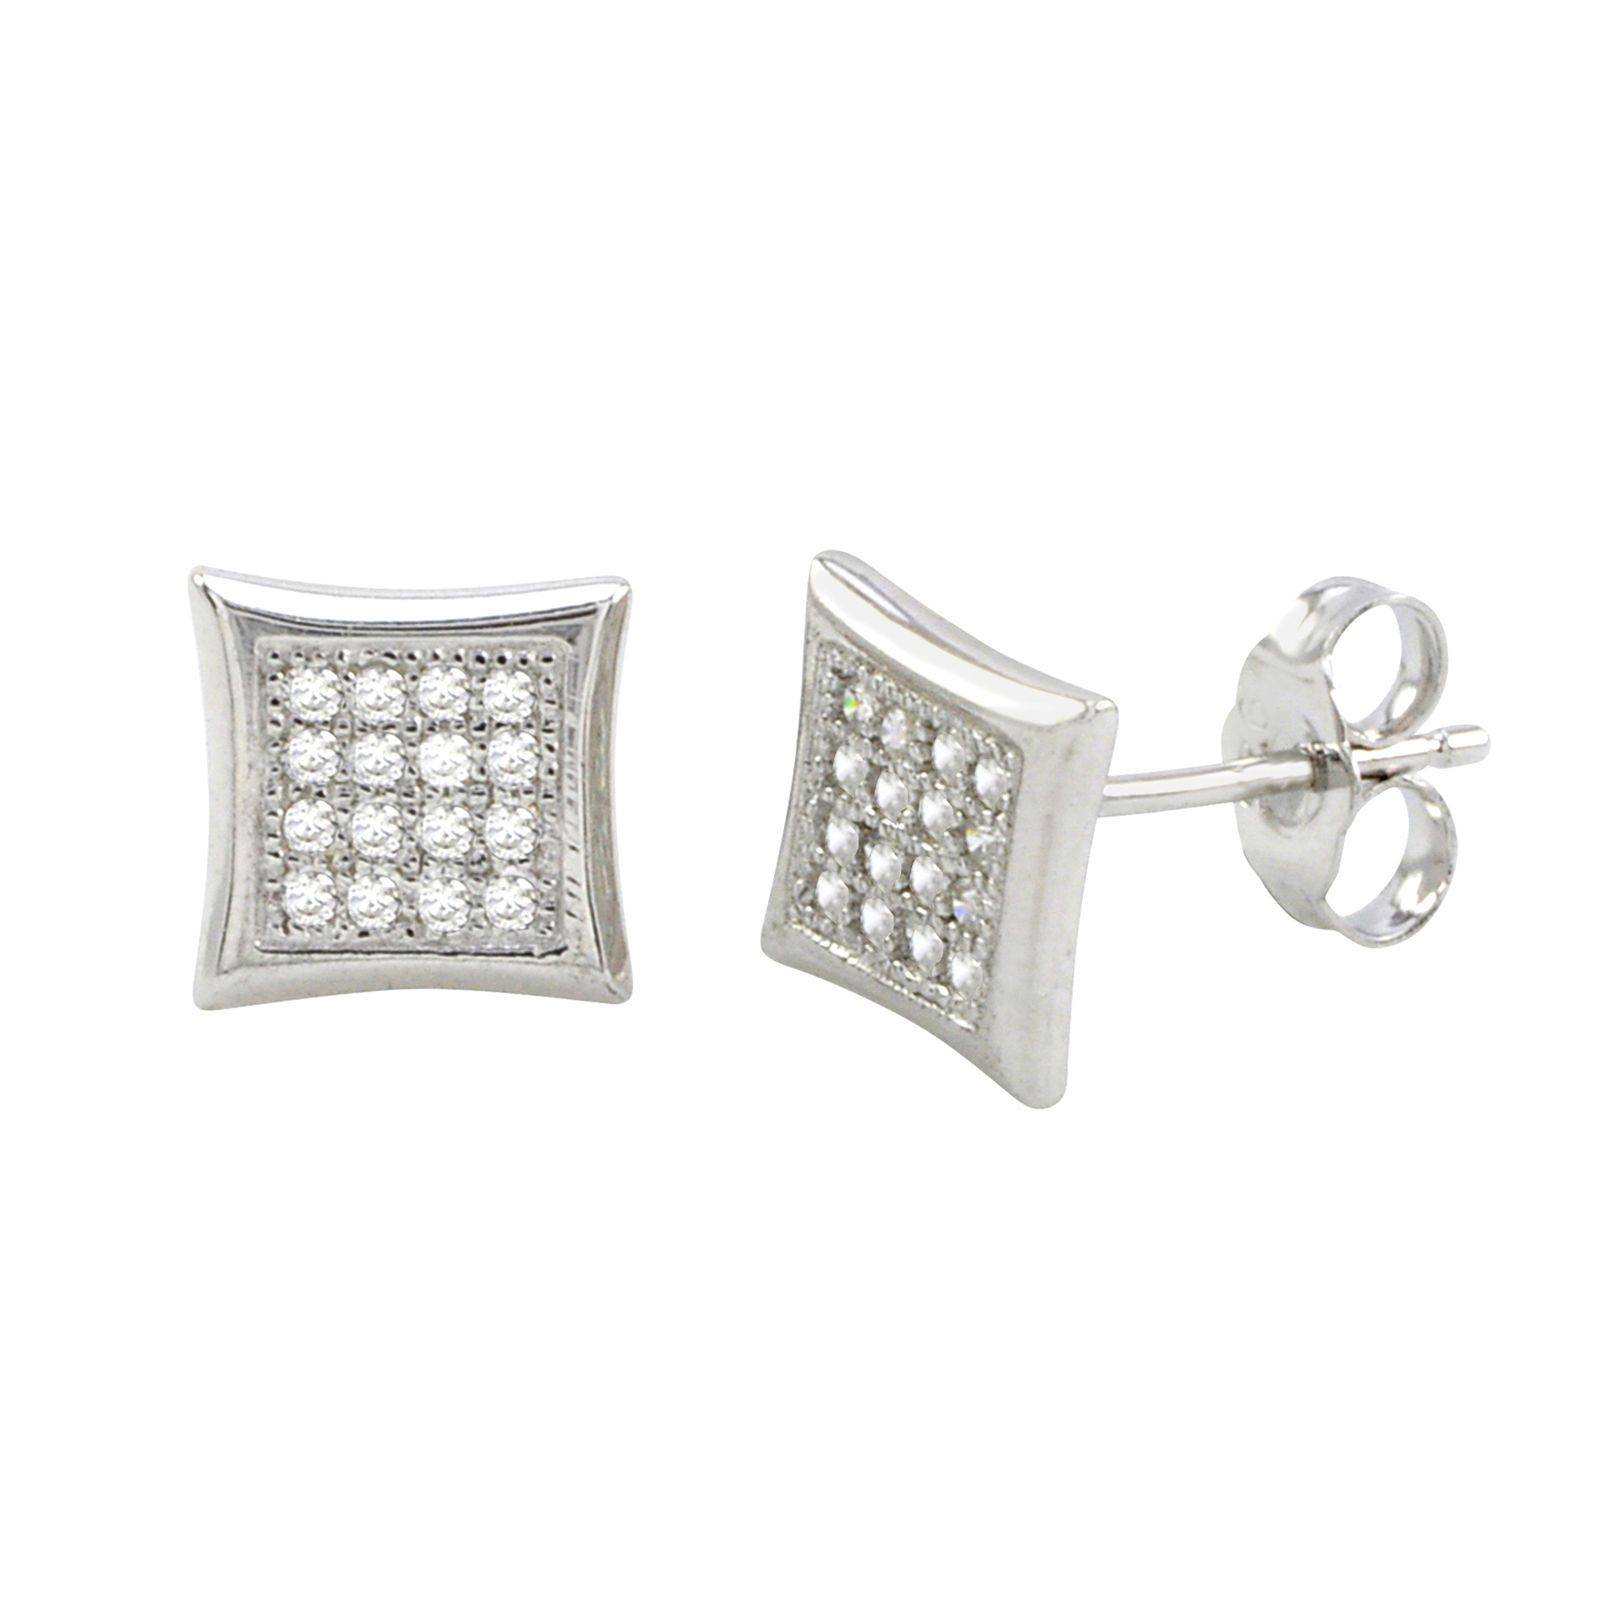 3be346bad Sterling Silver Micropave Stud Earrings Kite Shaped Clear CZ 8mm x 8mm